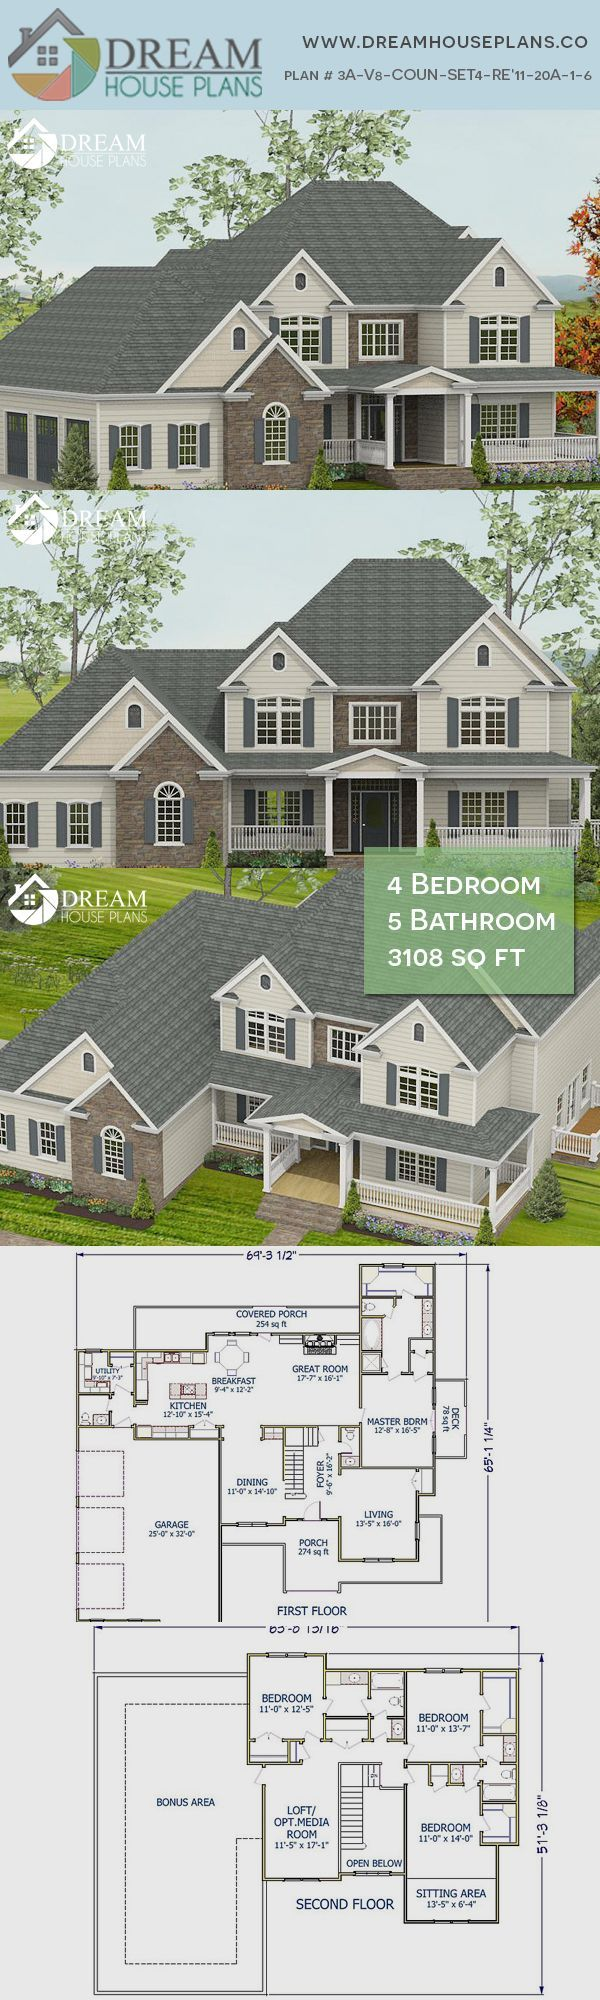 Dream House Plans: Popular Southern 4 Bedroom, 3108 Sq. Ft. house plan with cust...